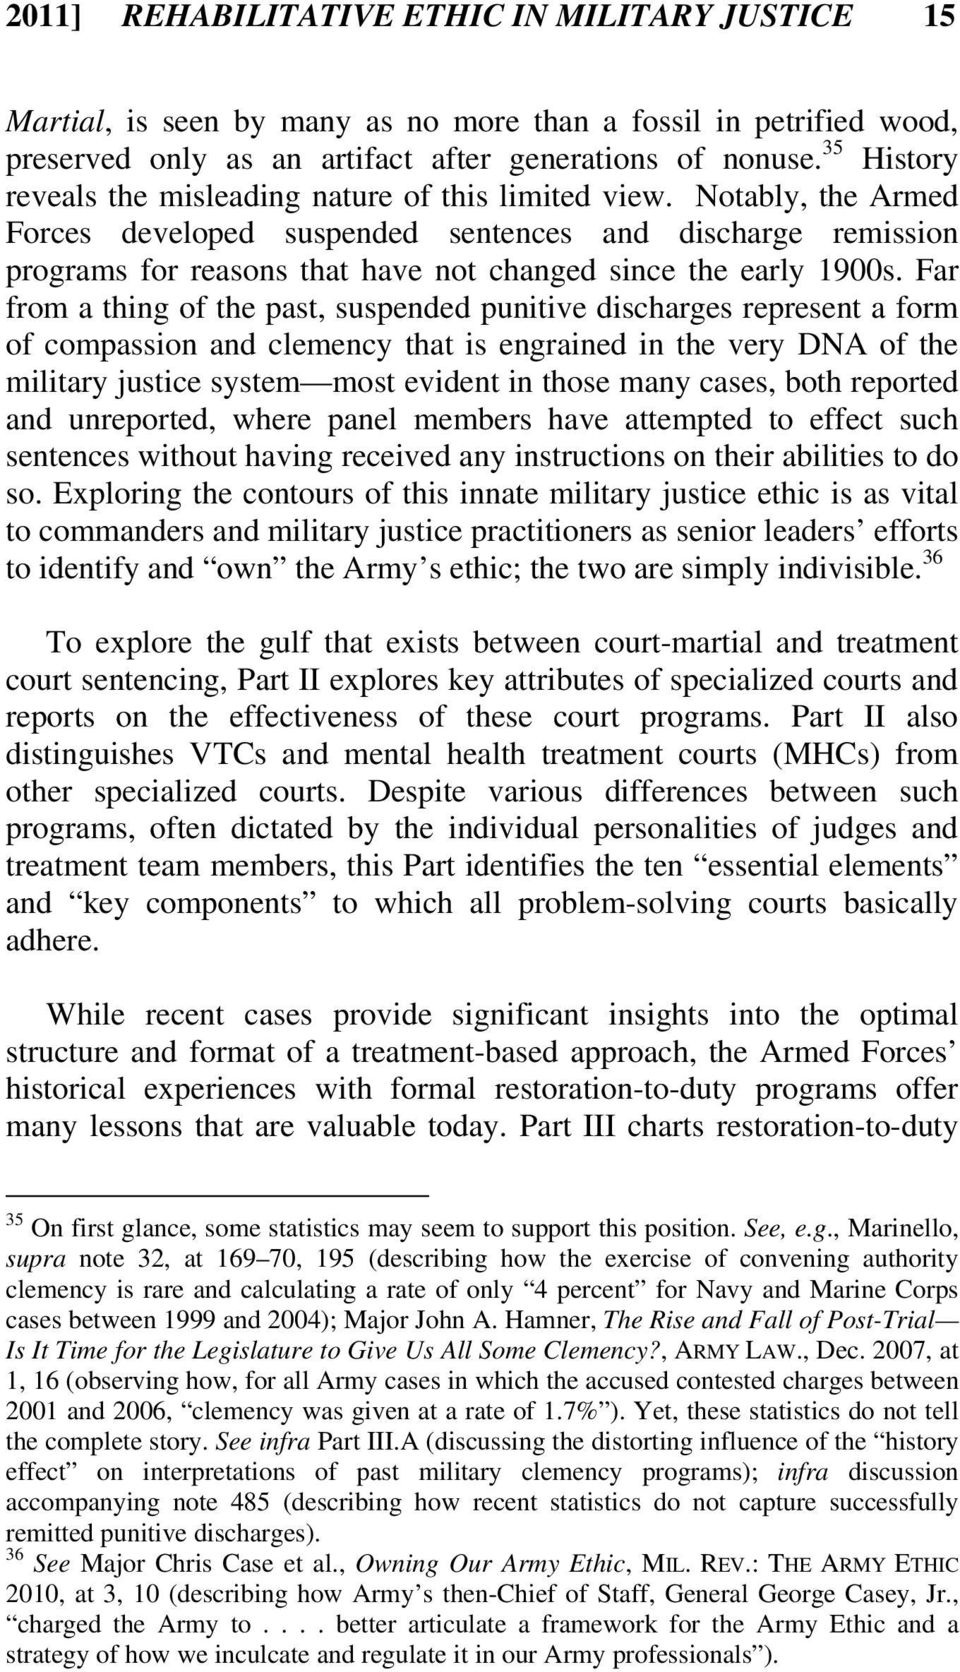 Notably, the Armed Forces developed suspended sentences and discharge remission programs for reasons that have not changed since the early 1900s.